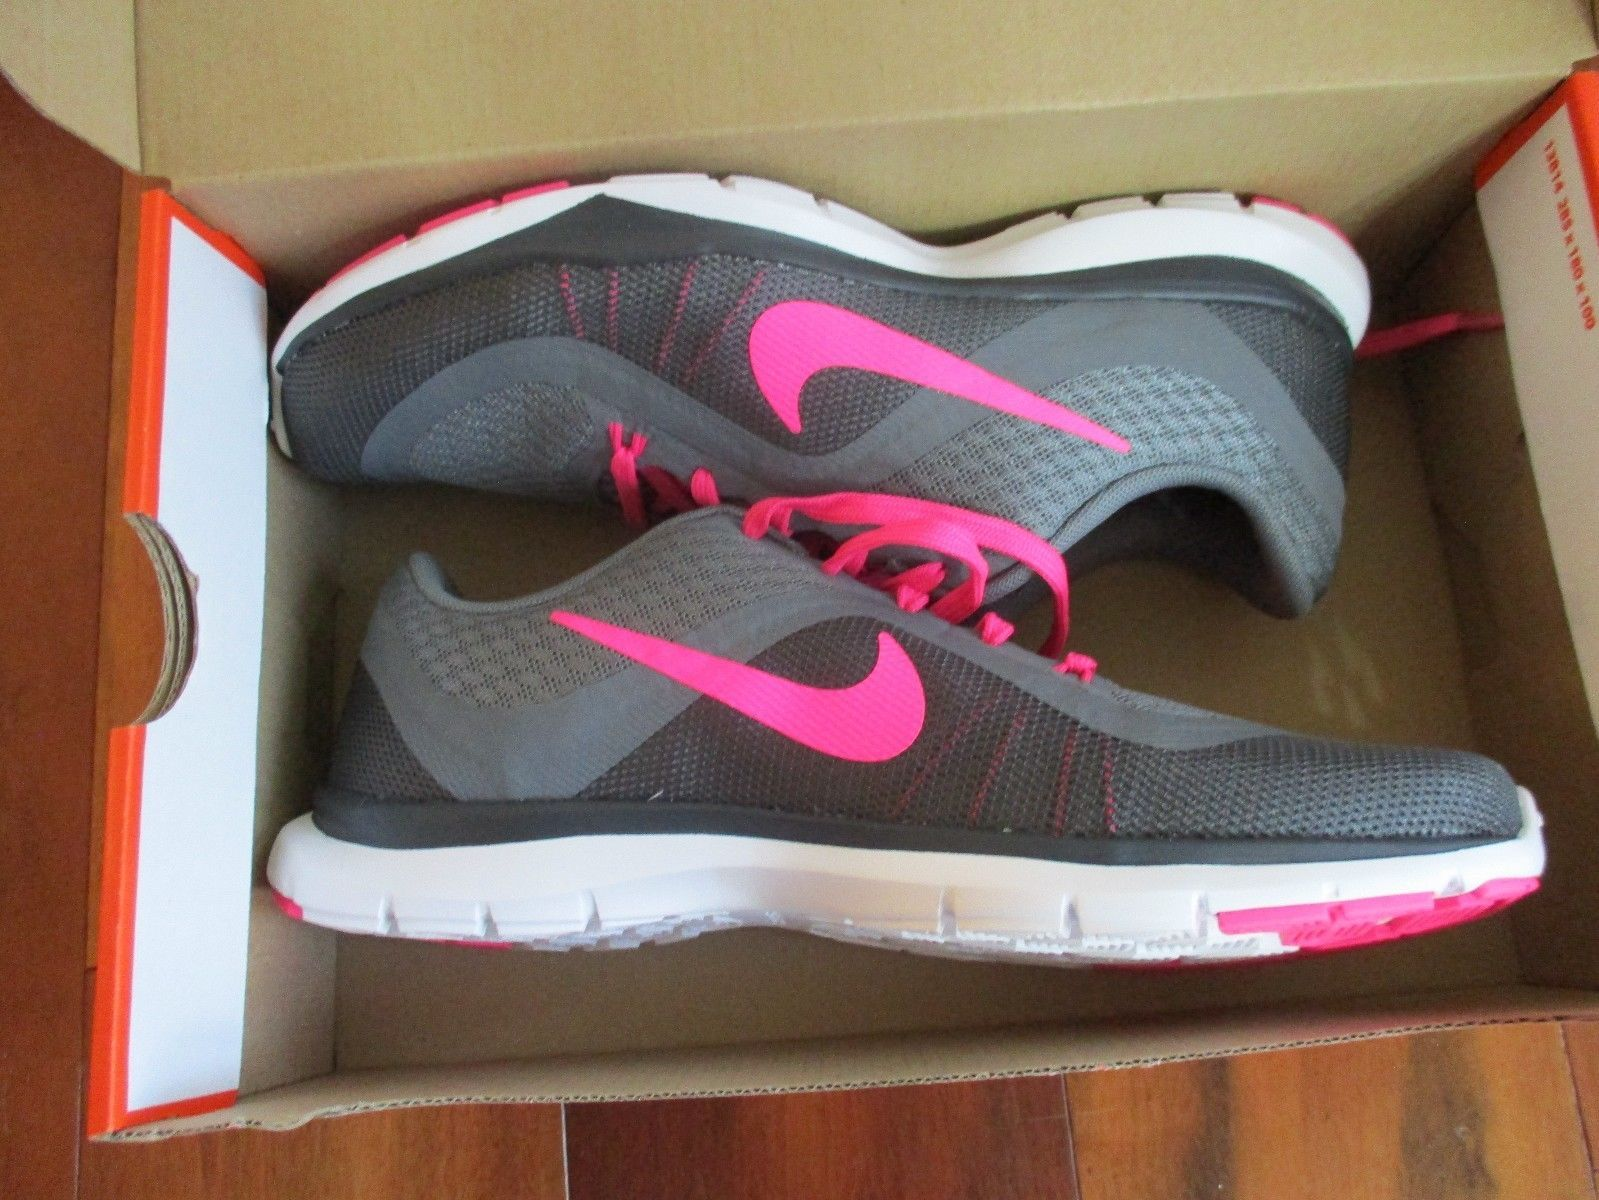 BNIB Nike Flex Trainer 6 Athletic shoes Women lace up